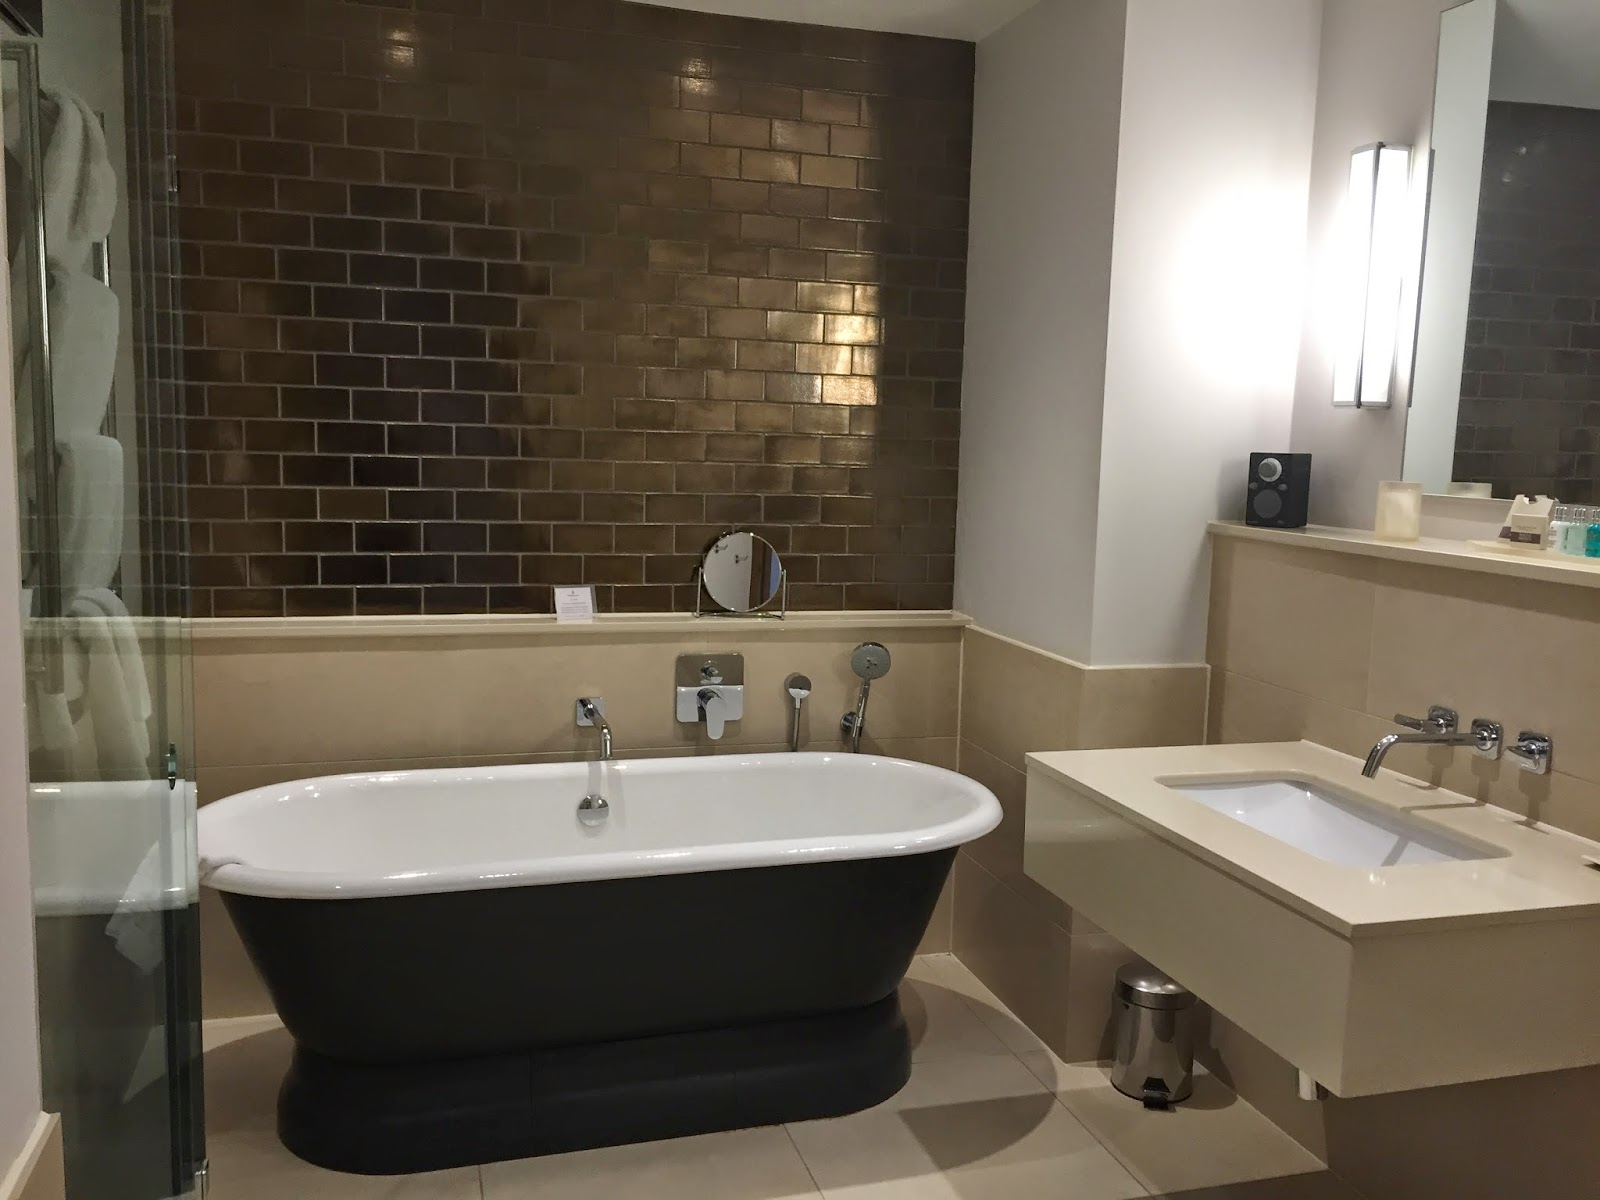 Bathroom, Rudding Park Hotel, Harrogate